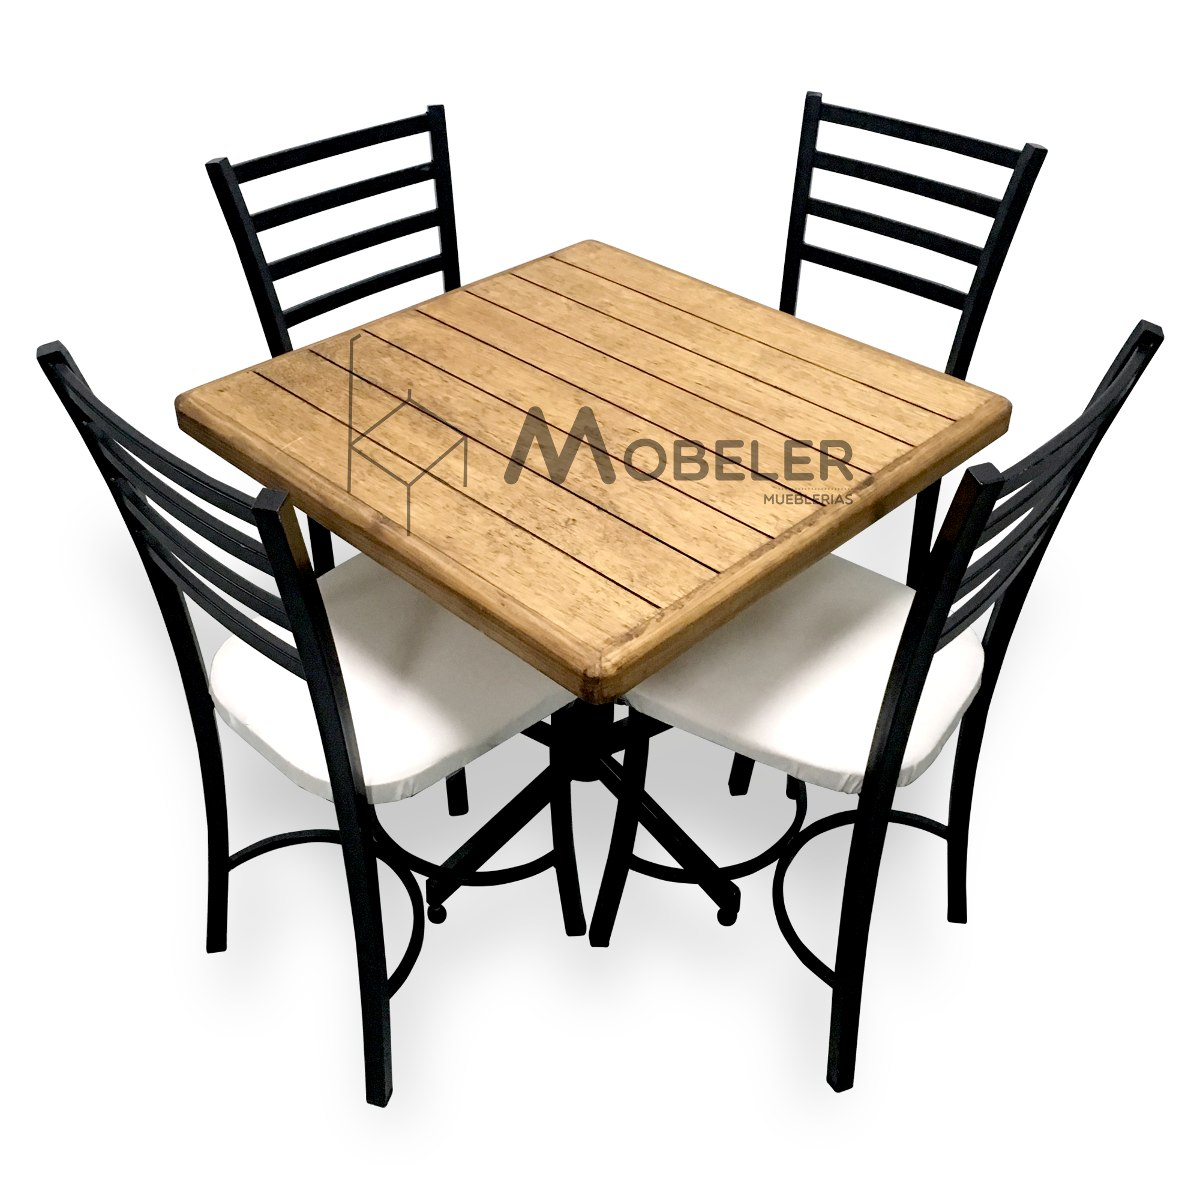 Mesa de madera sillas para restaurante bar cafeter a for Sillas de madera para bar